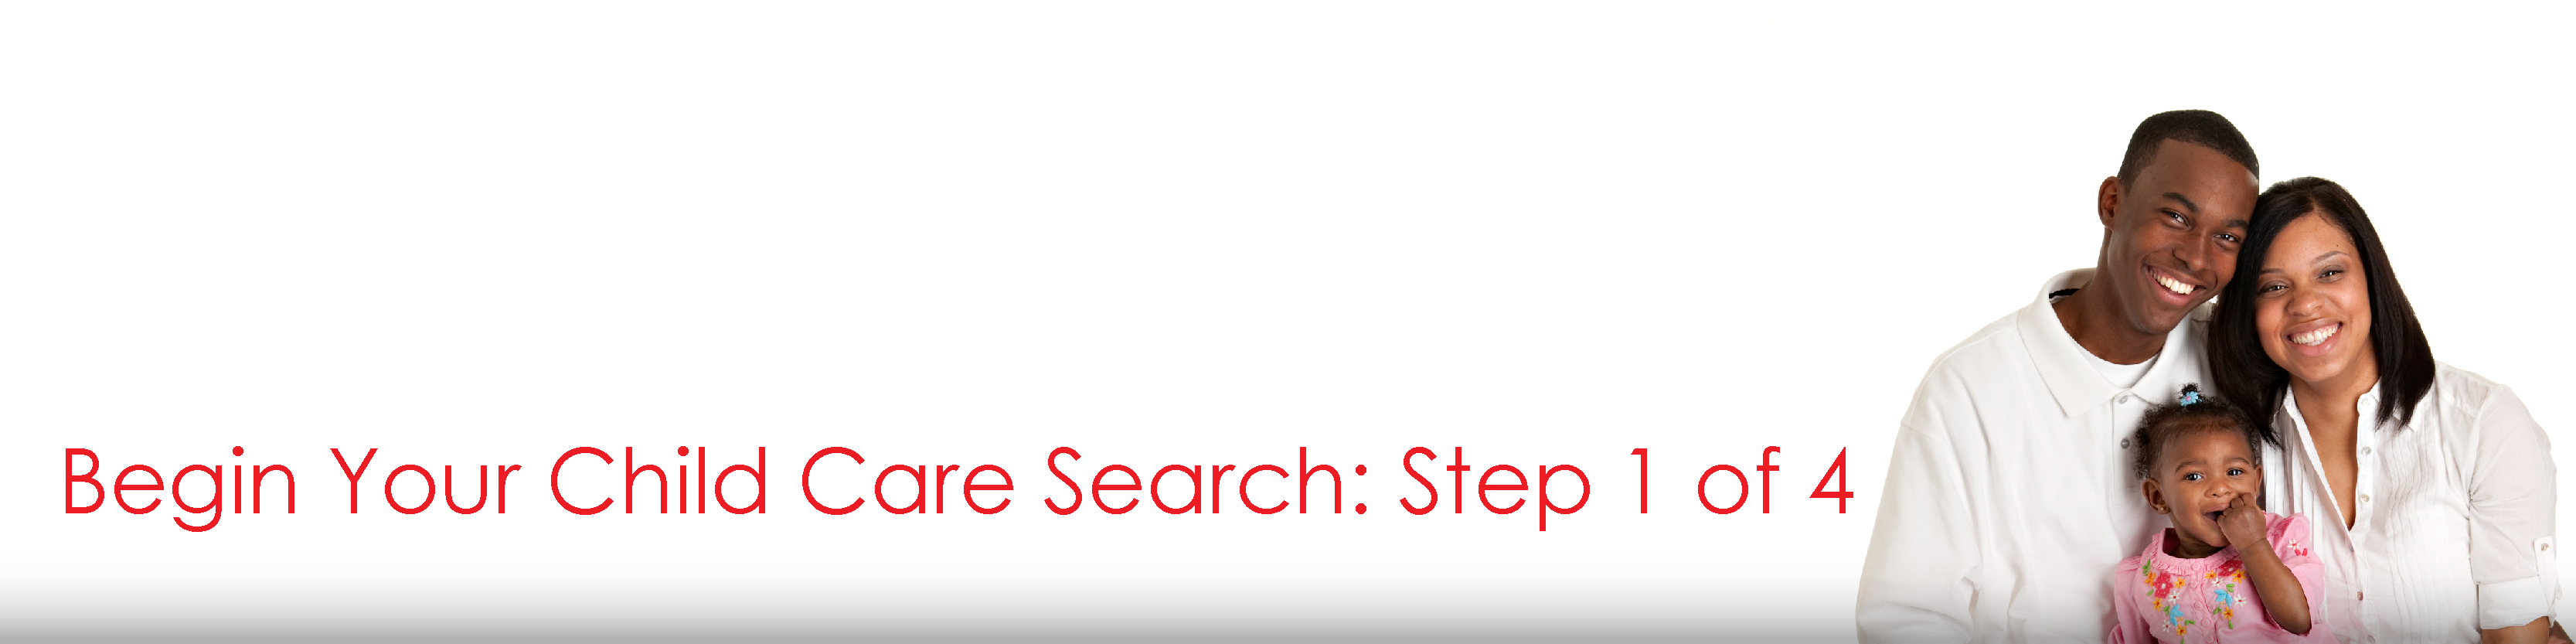 Begin Your Child Care Search: Step 1 of 4